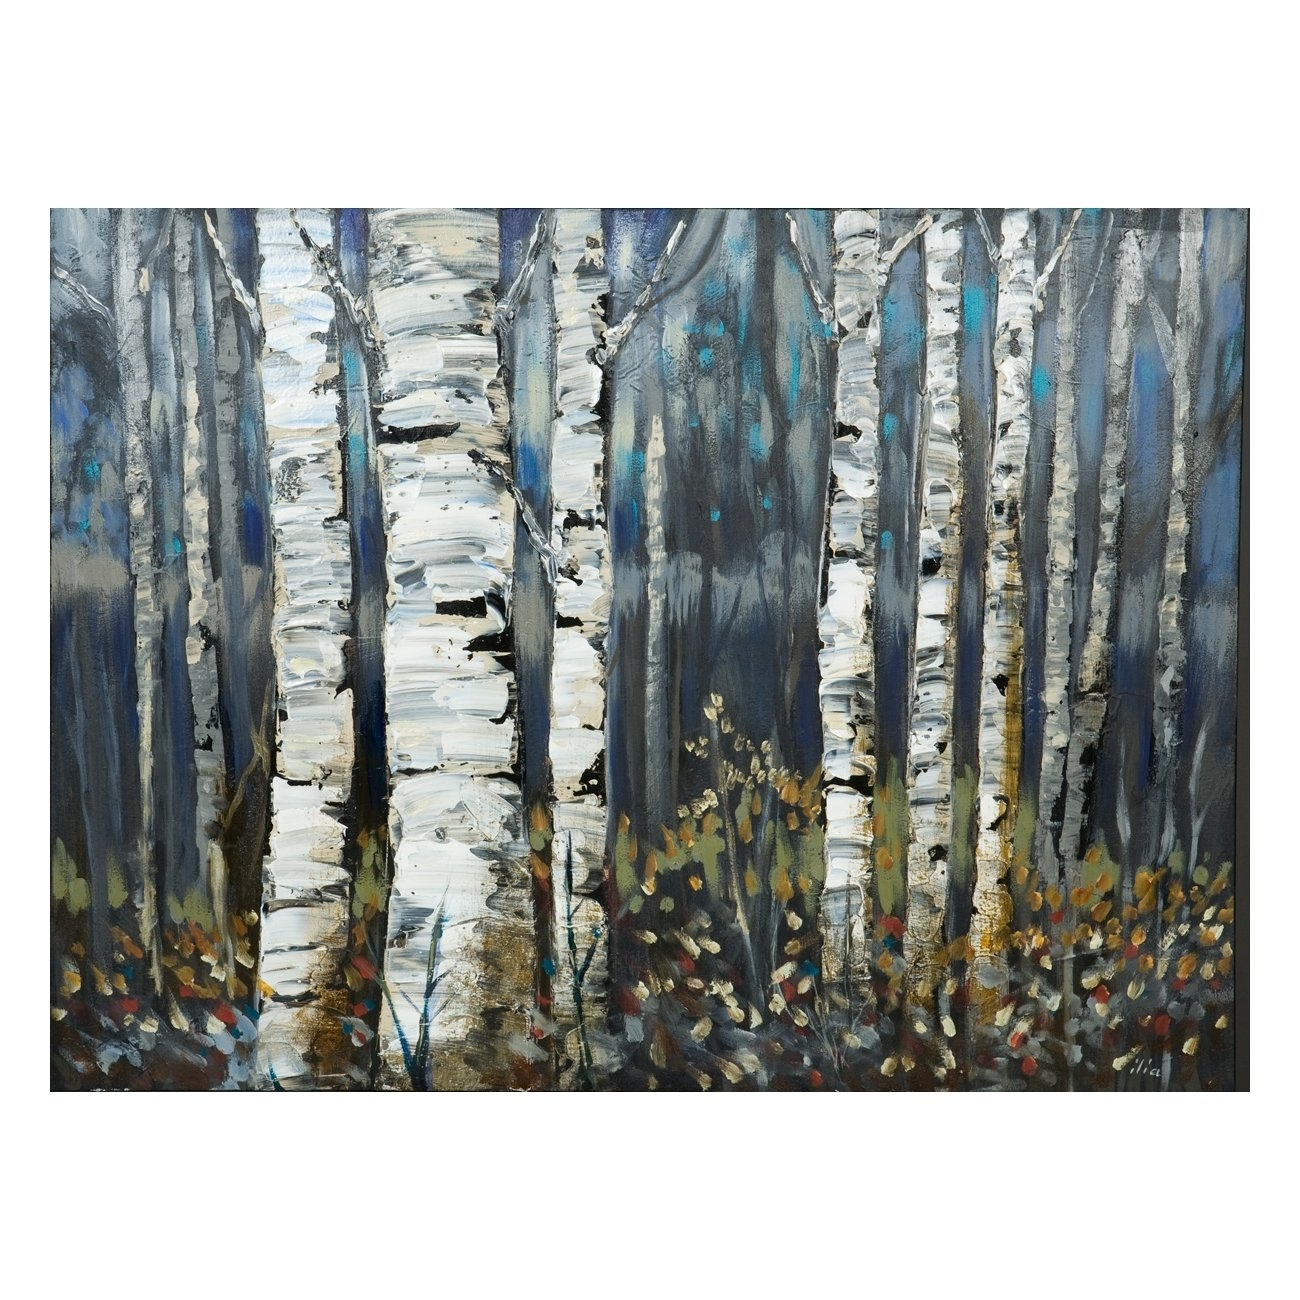 Laila's Ili142 11F Birch Trees Canvas Art | Lowe's Canada With Most Recent Abstract Wall Art Canada (View 6 of 20)